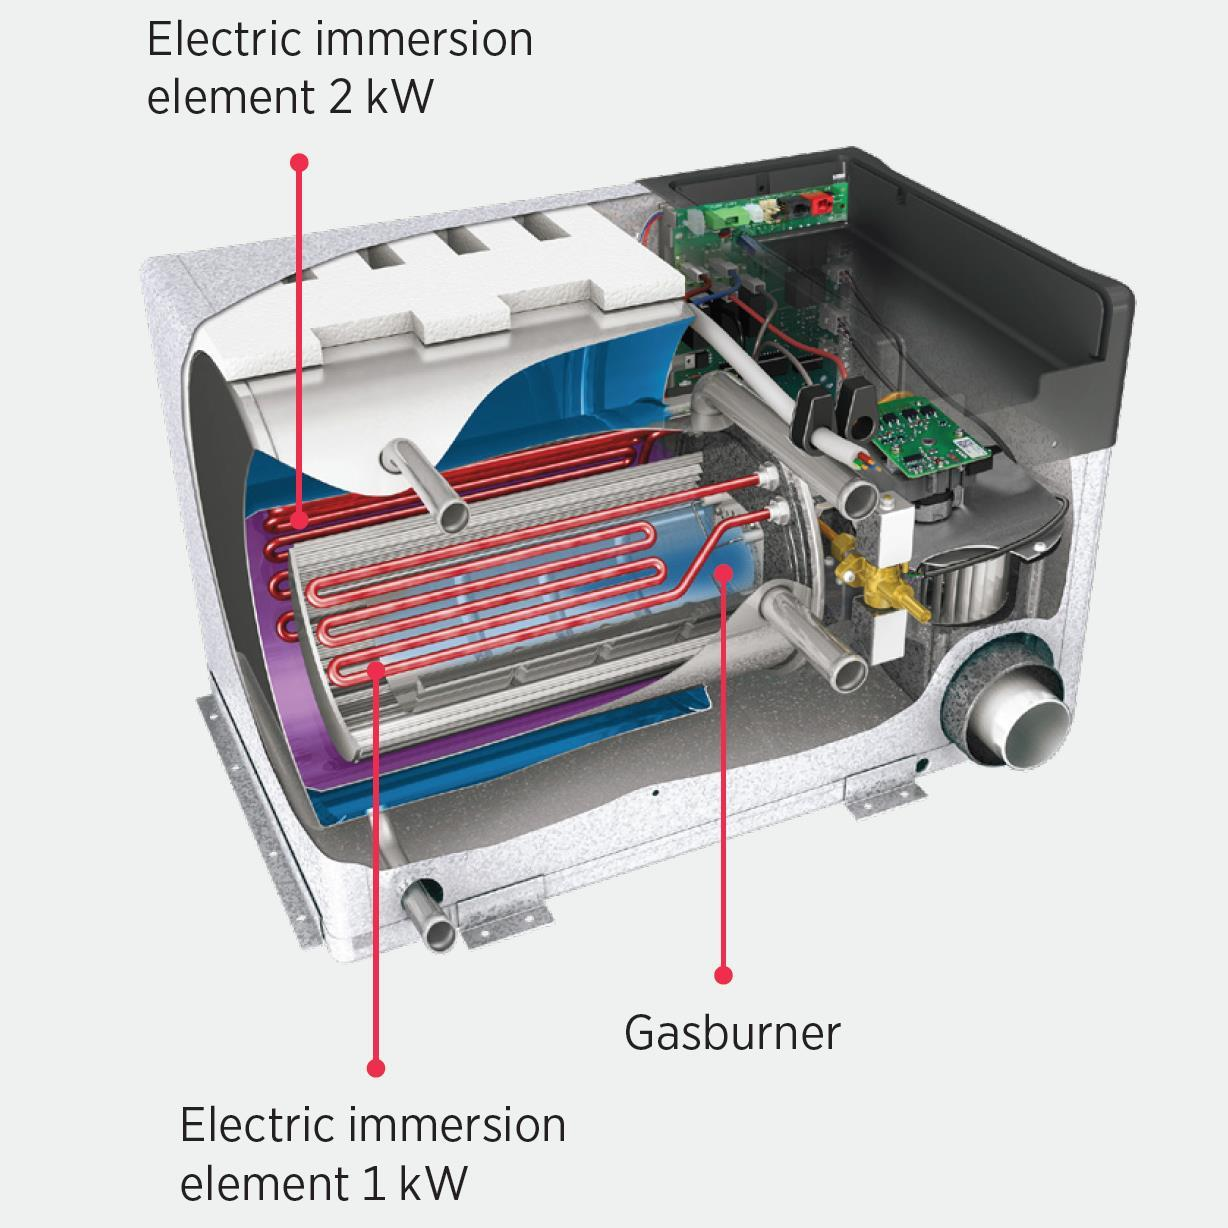 The Alde boiler heats up the glycol fluid using a gas burner or electric immersion elements.